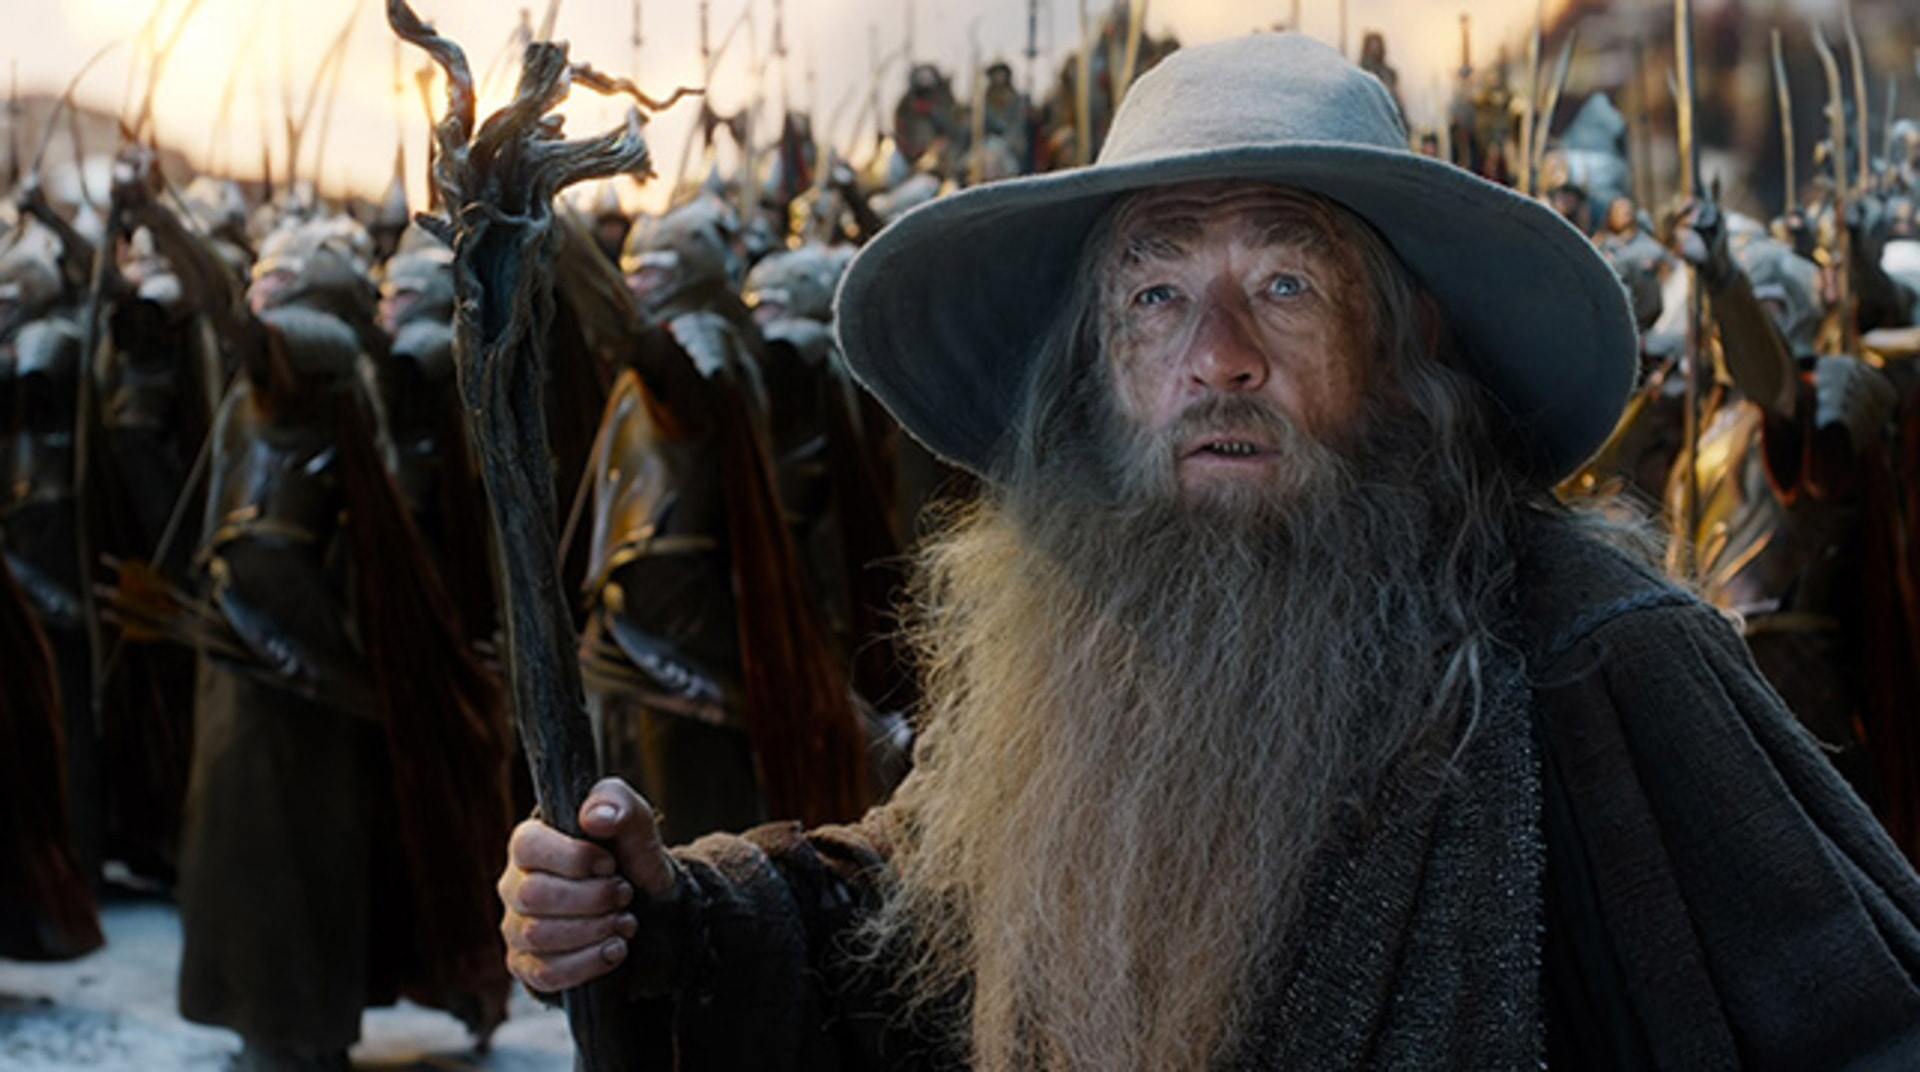 The Hobbit: The Battle of the Five Armies - Image 58